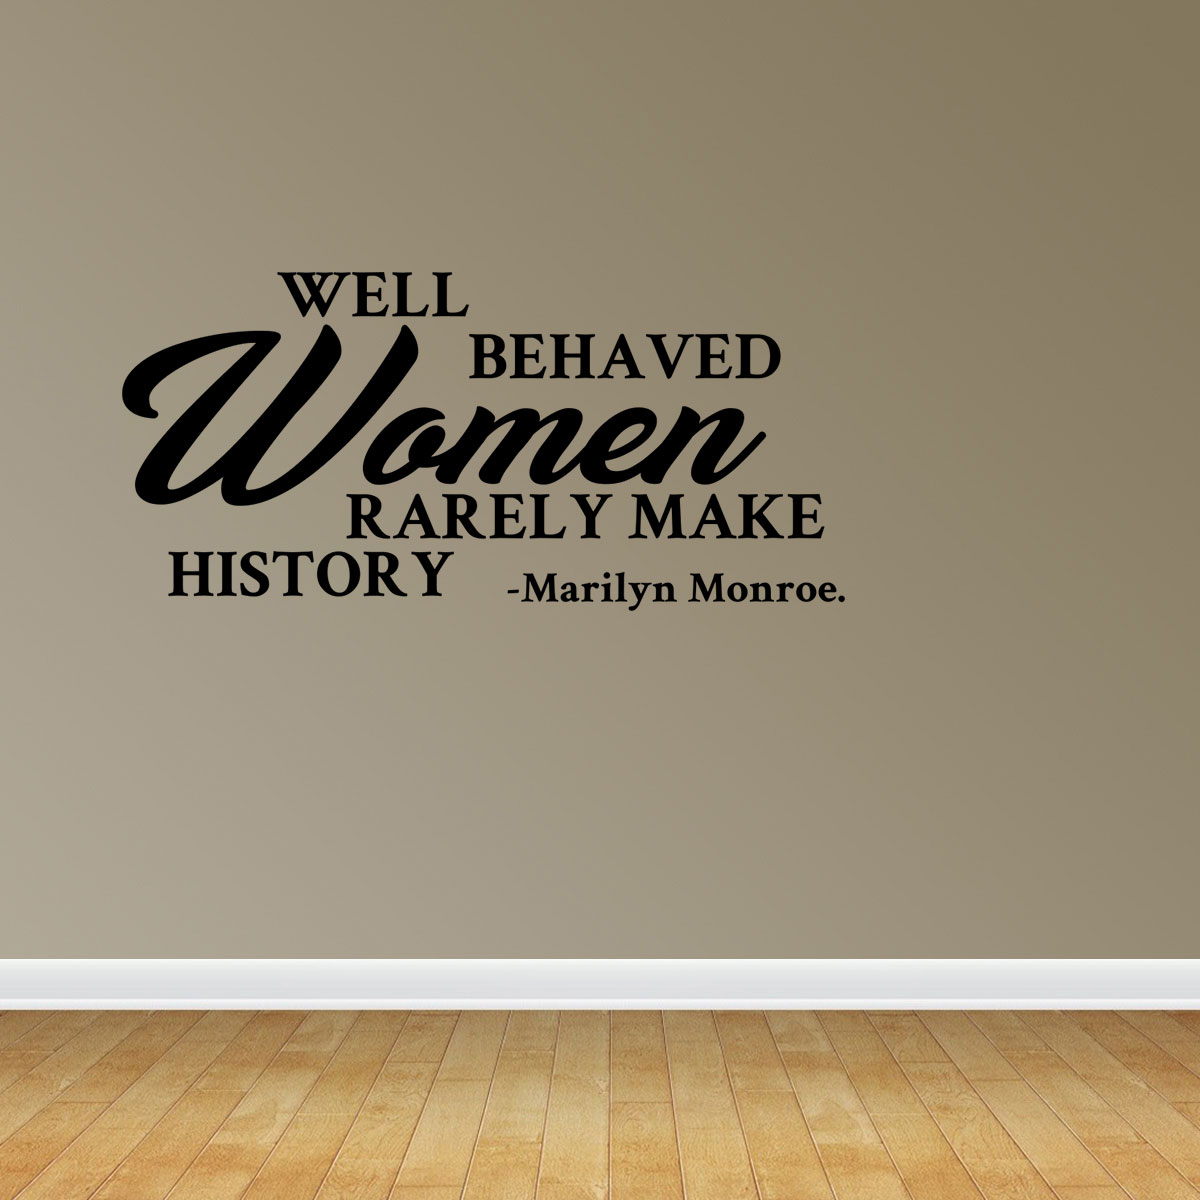 Wall Decal Quote Well Behaved Women Rarely Make History Marilyn Monroe Vinyl Sticker Home Decor PC540